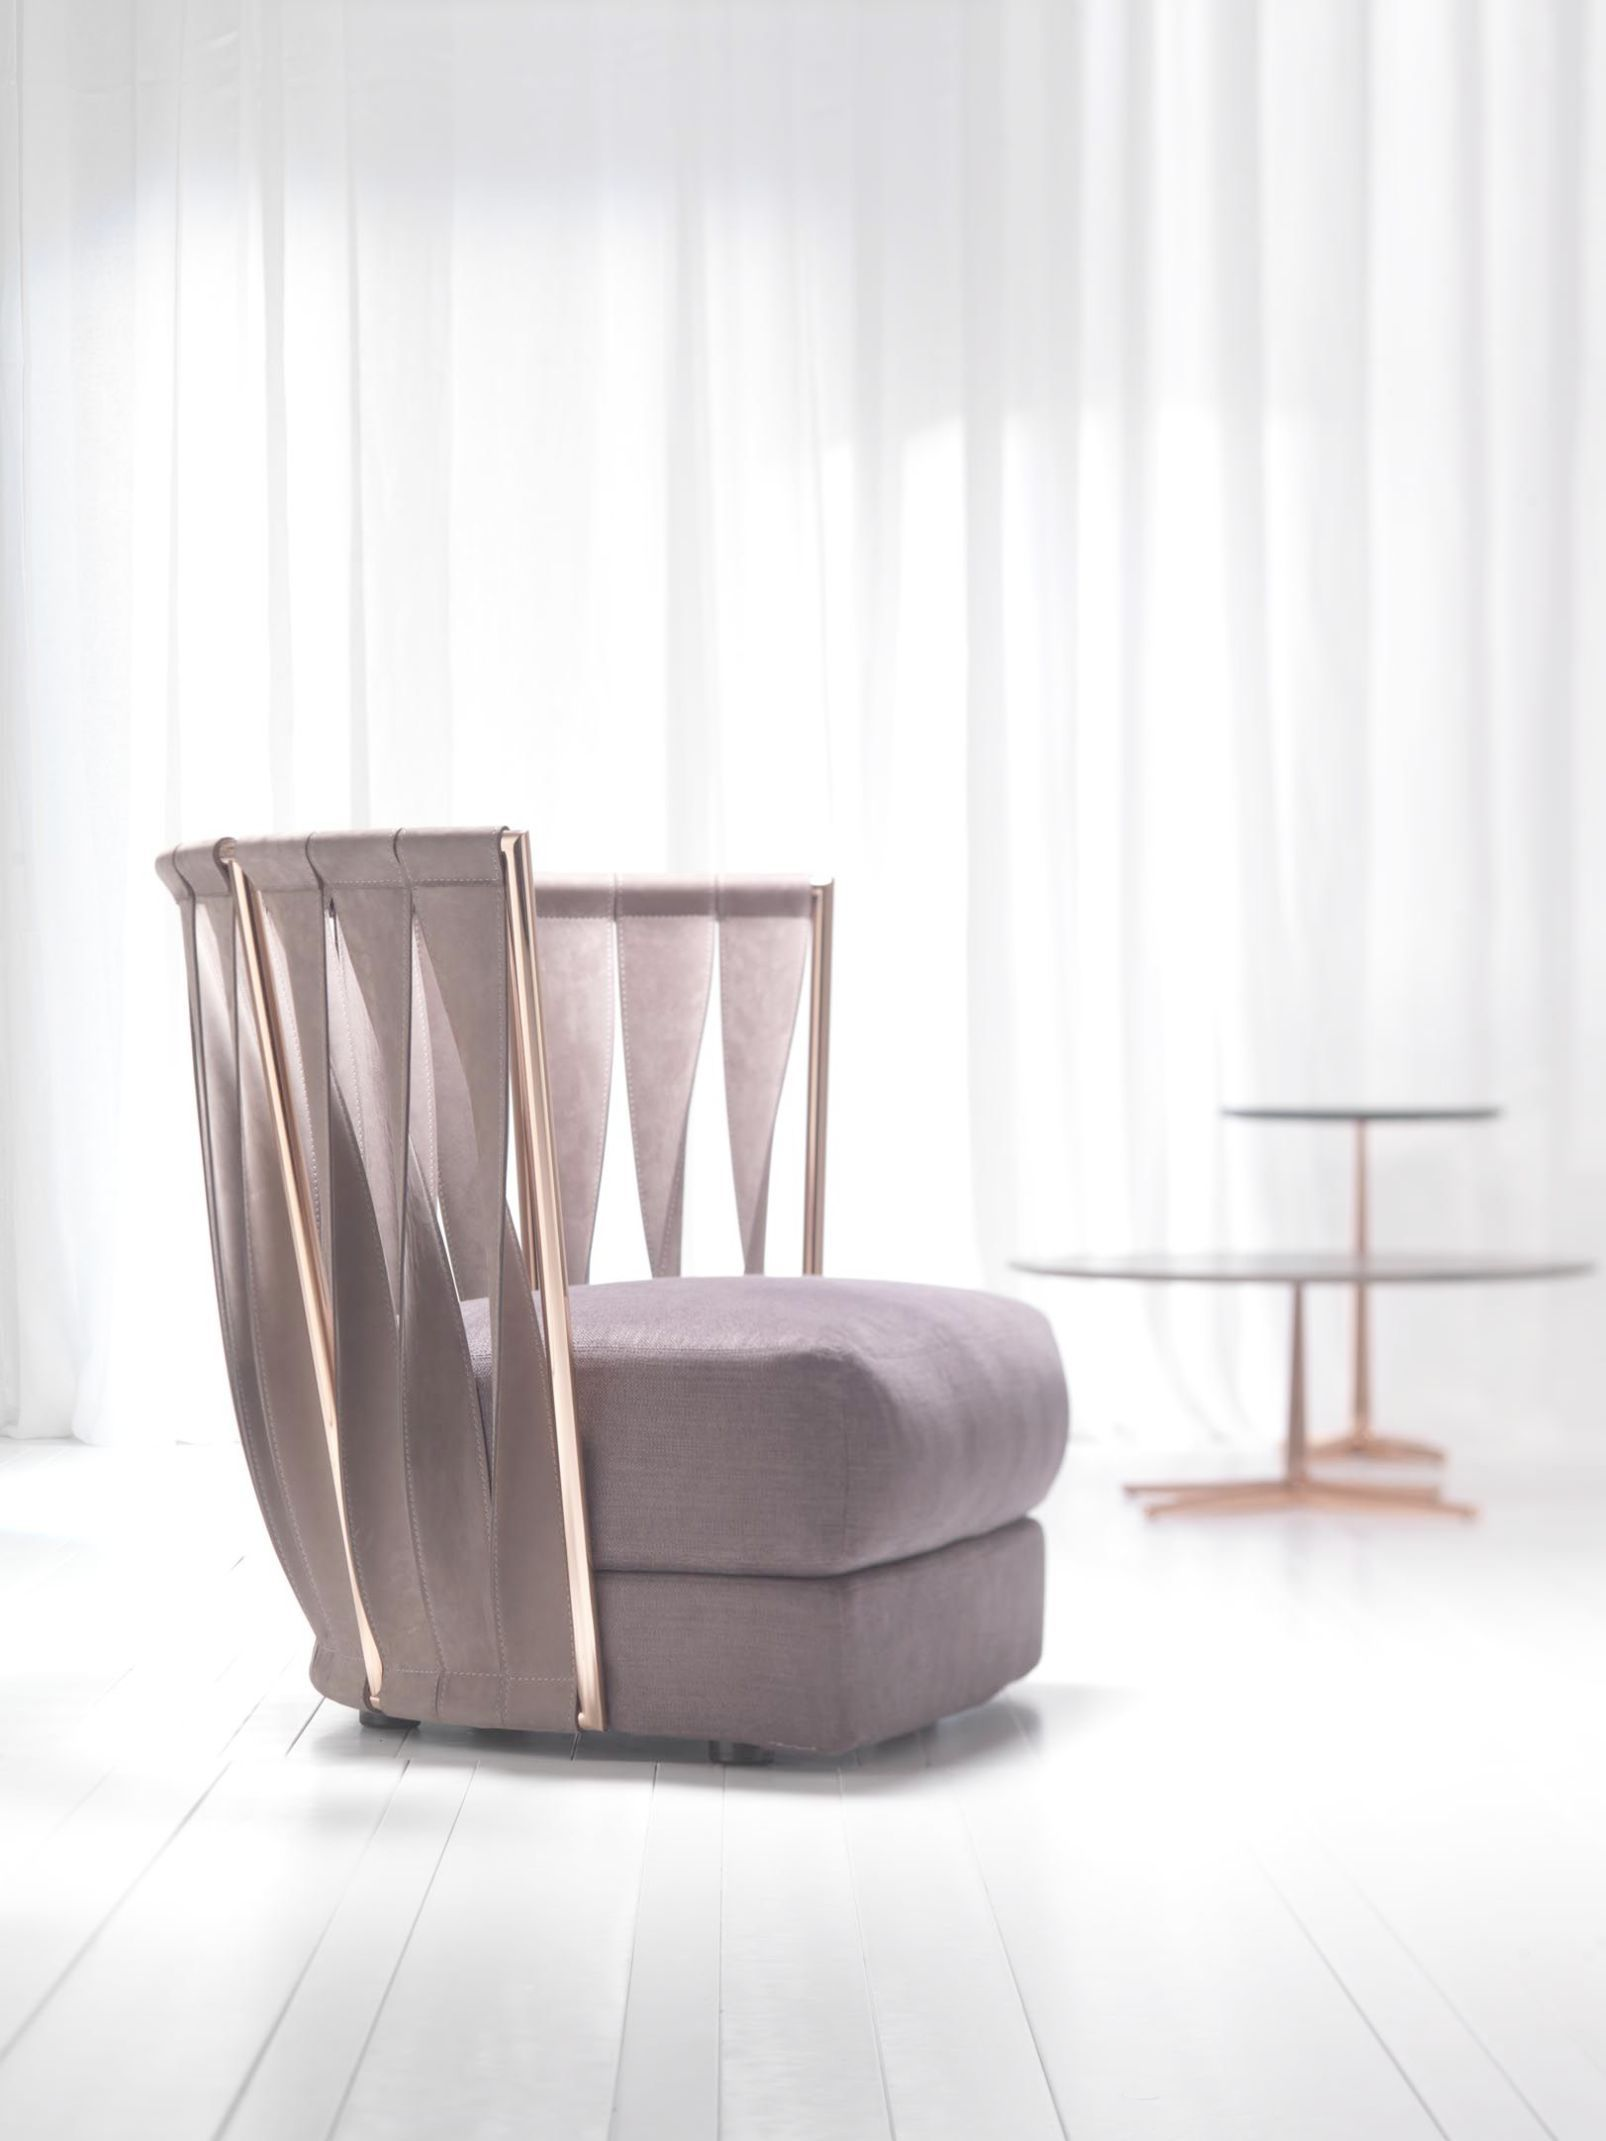 Levin Furniture Living Room Chairs Other Ashley Furniture Club Chairs Whenever Furni Luxury Furniture Living Room Living Room Furniture Arrangement Sofa Design